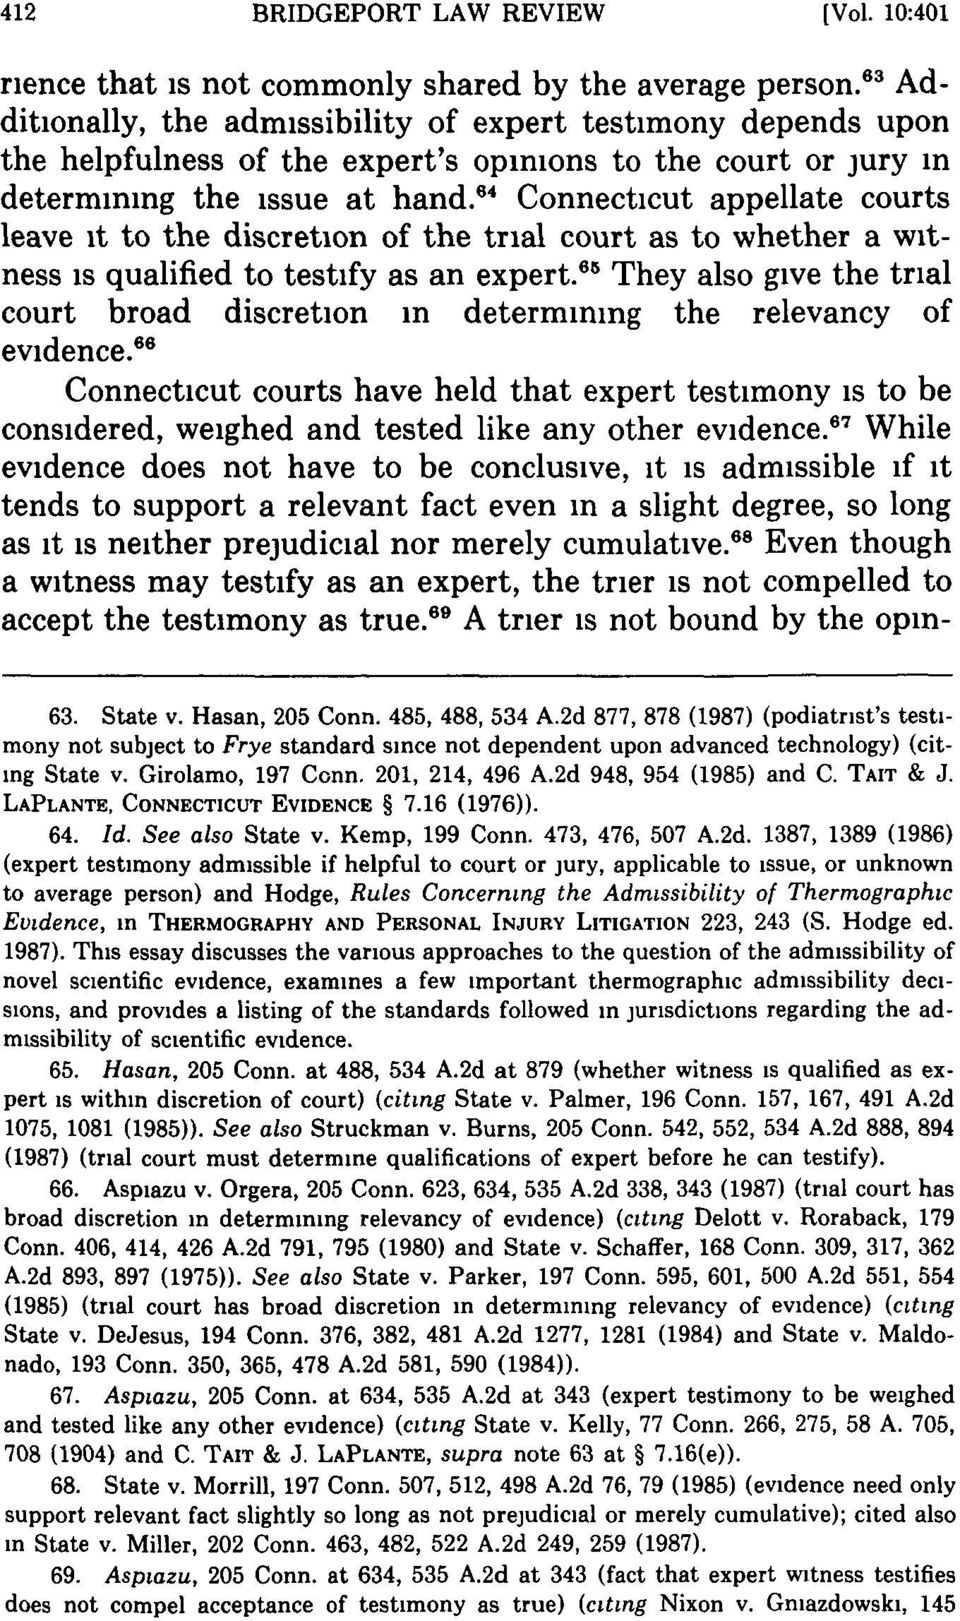 4 Connecticut appellate courts leave it to the discretion of the trial court as to whether a witness is qualified to testify as an expert.